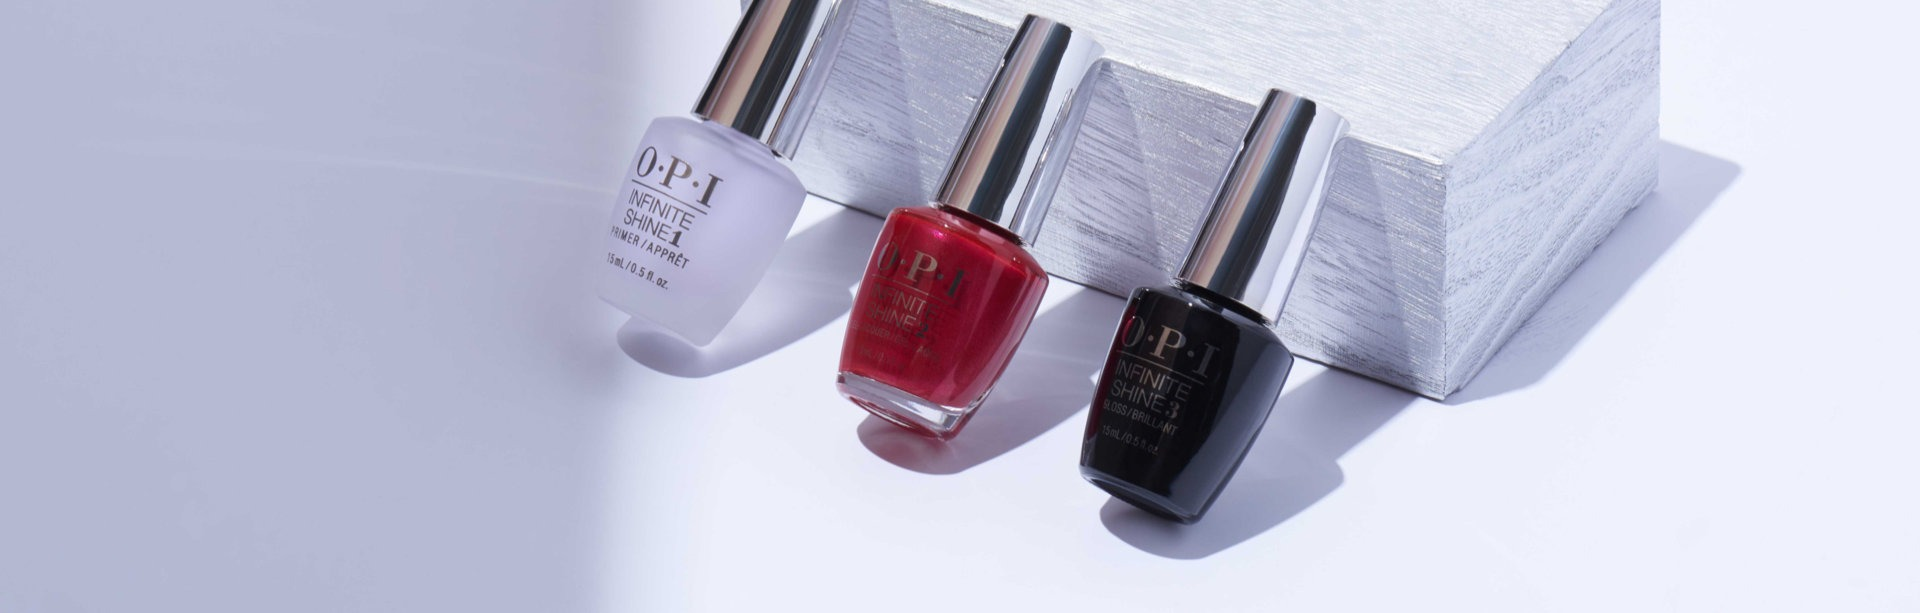 OPI Infinite Shine: 11 days of wear and shine perfection